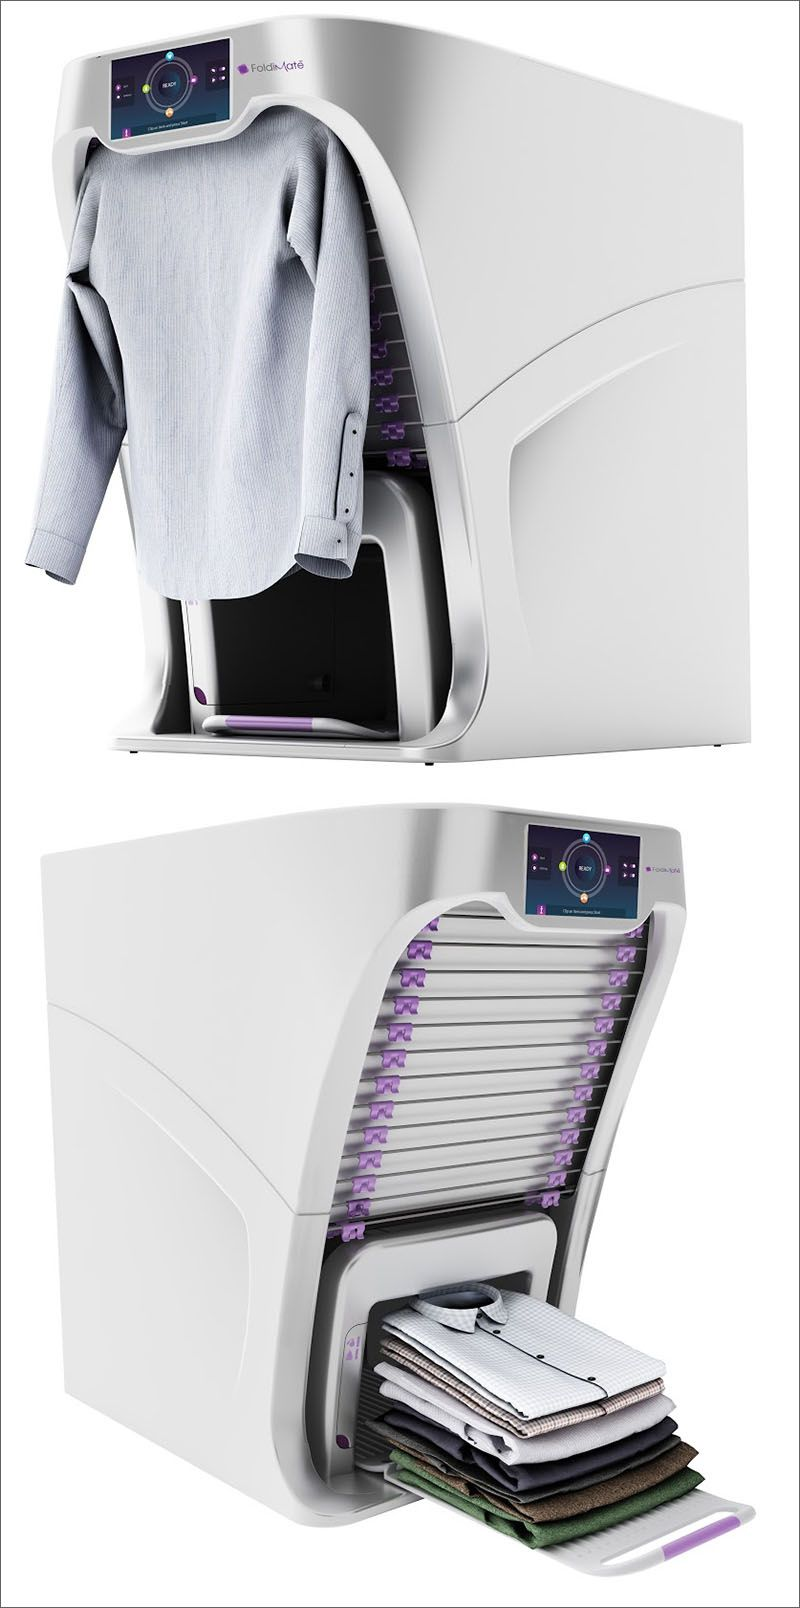 See How This Machine Will Fold Your Laundry So You Don't Have To